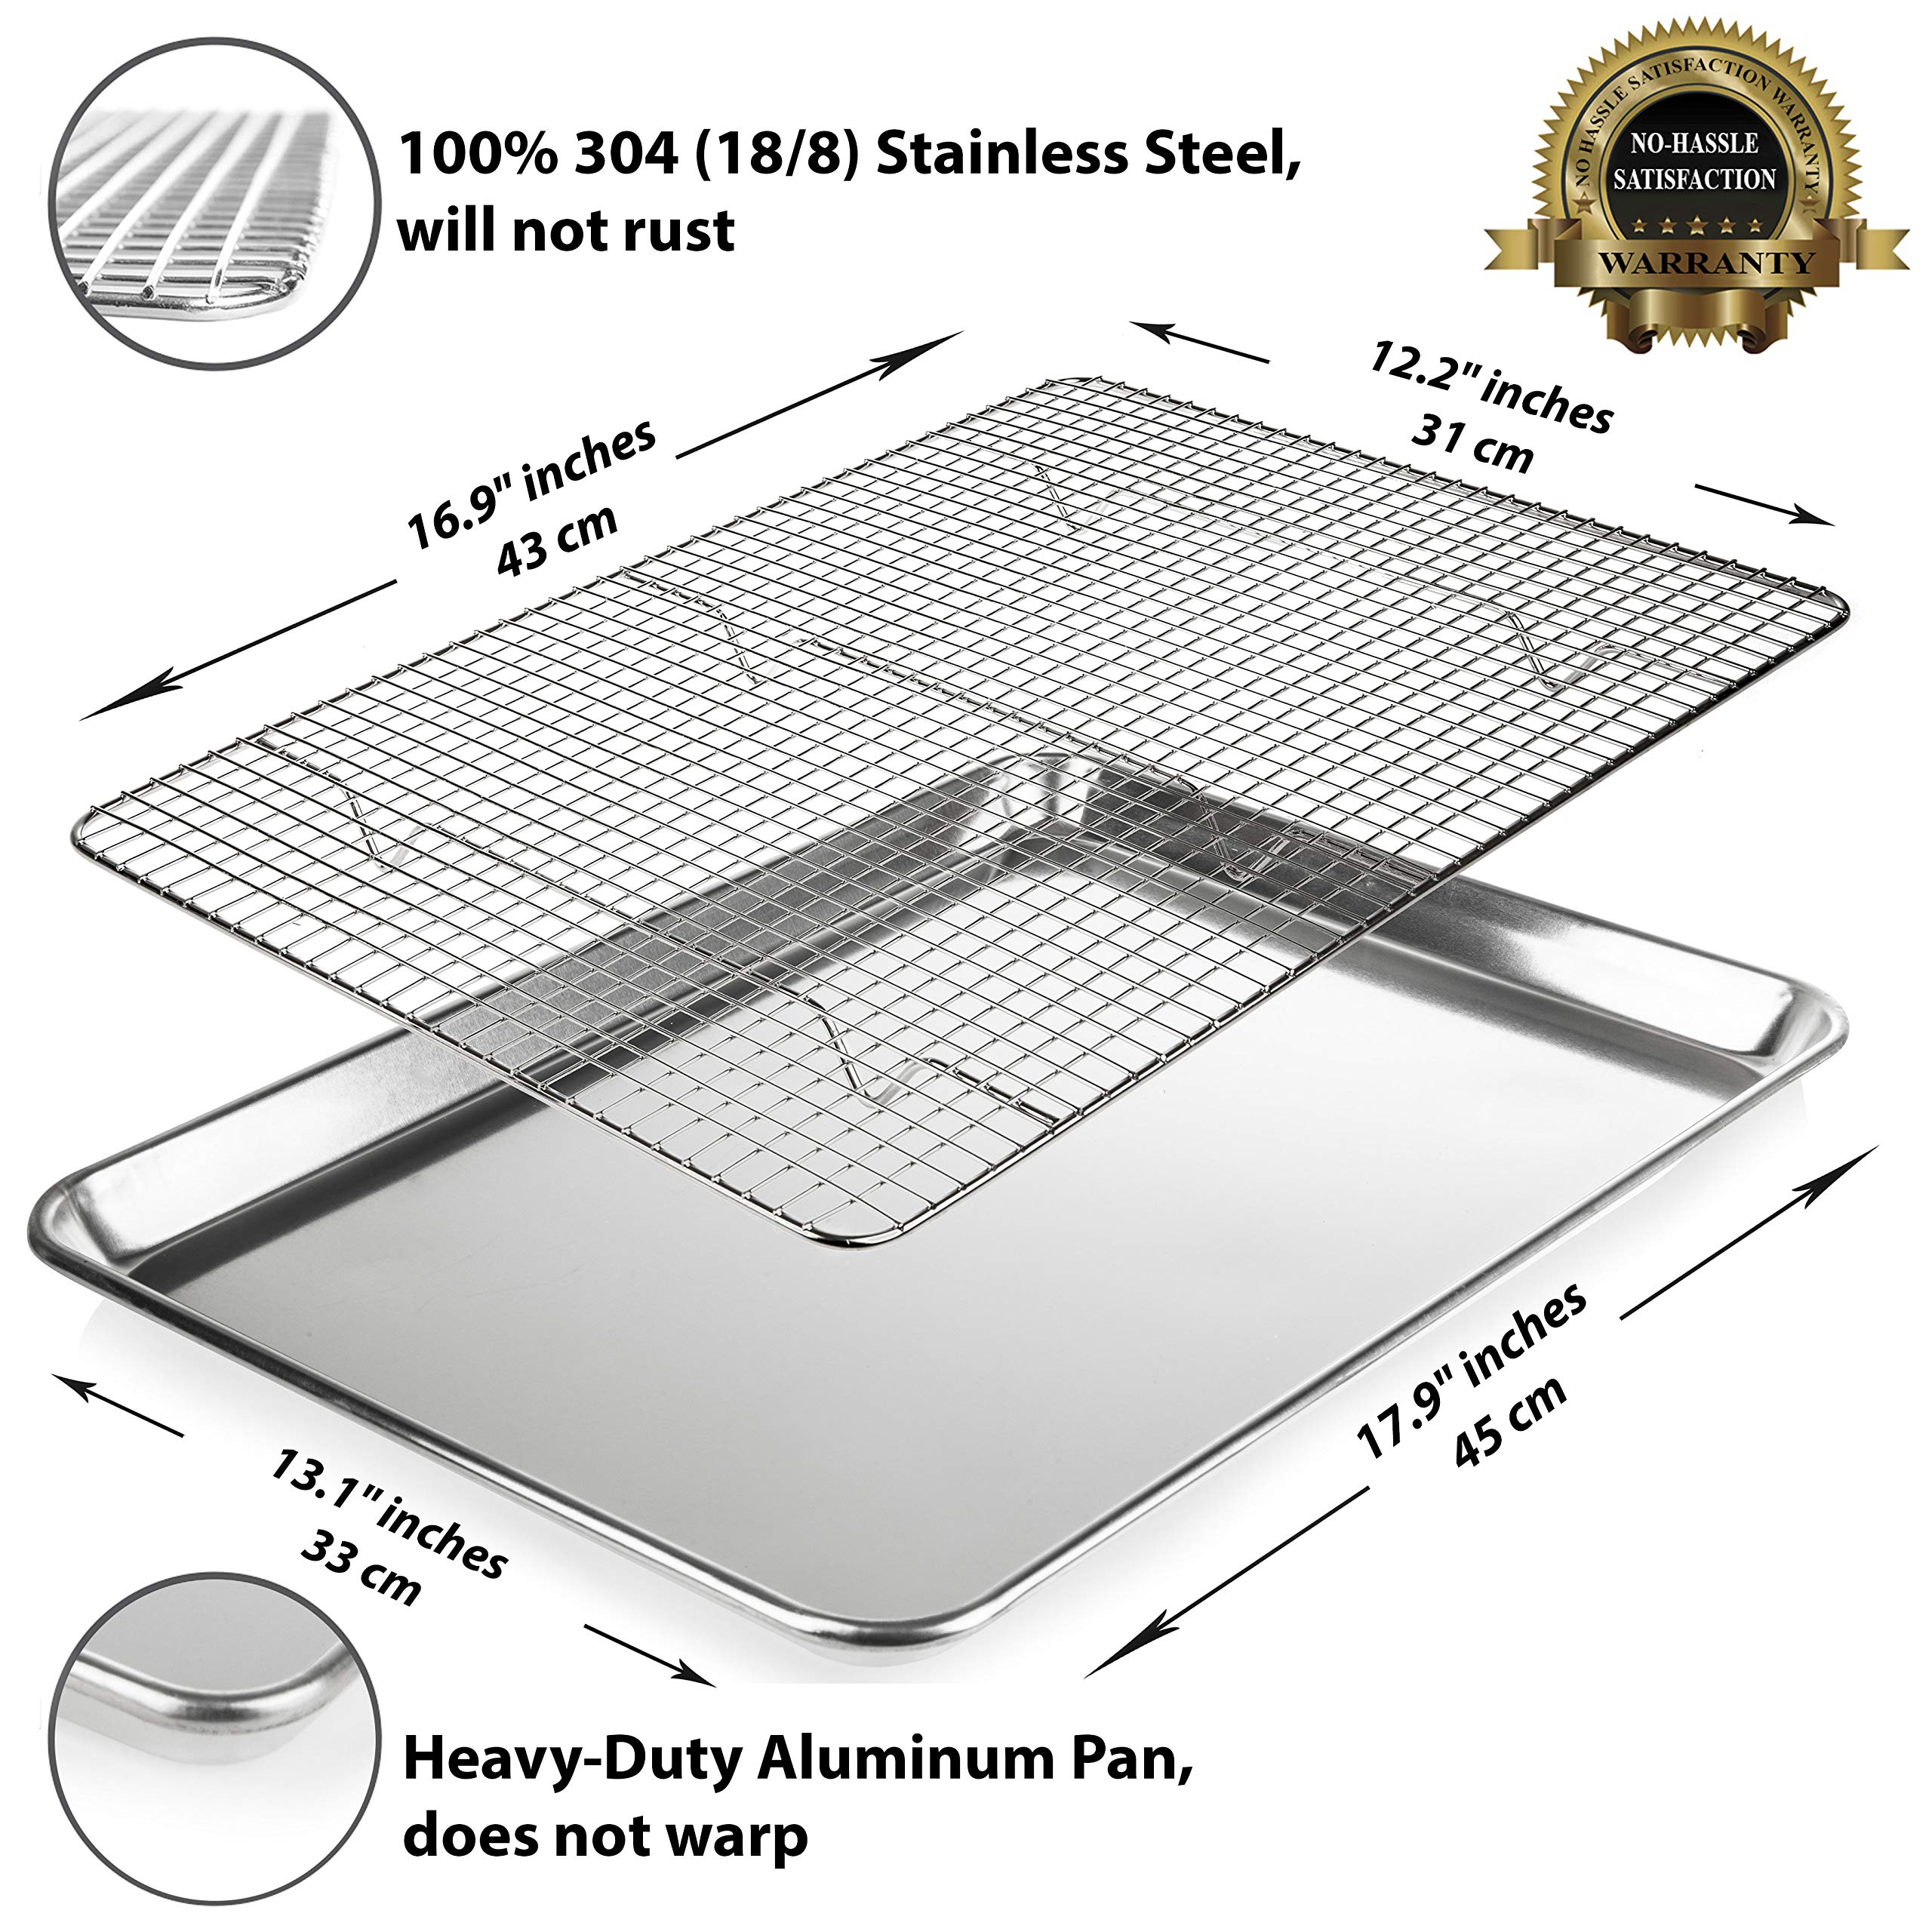 KITCHENATICS Baking Sheet with Cooling Rack: Half Aluminum Cookie Pan Tray with Stainless Steel Wire and Roasting Rack - 13.1'' x 17.9'', Heavy Duty Commercial Quality by KITCHENATICS (Image #4)